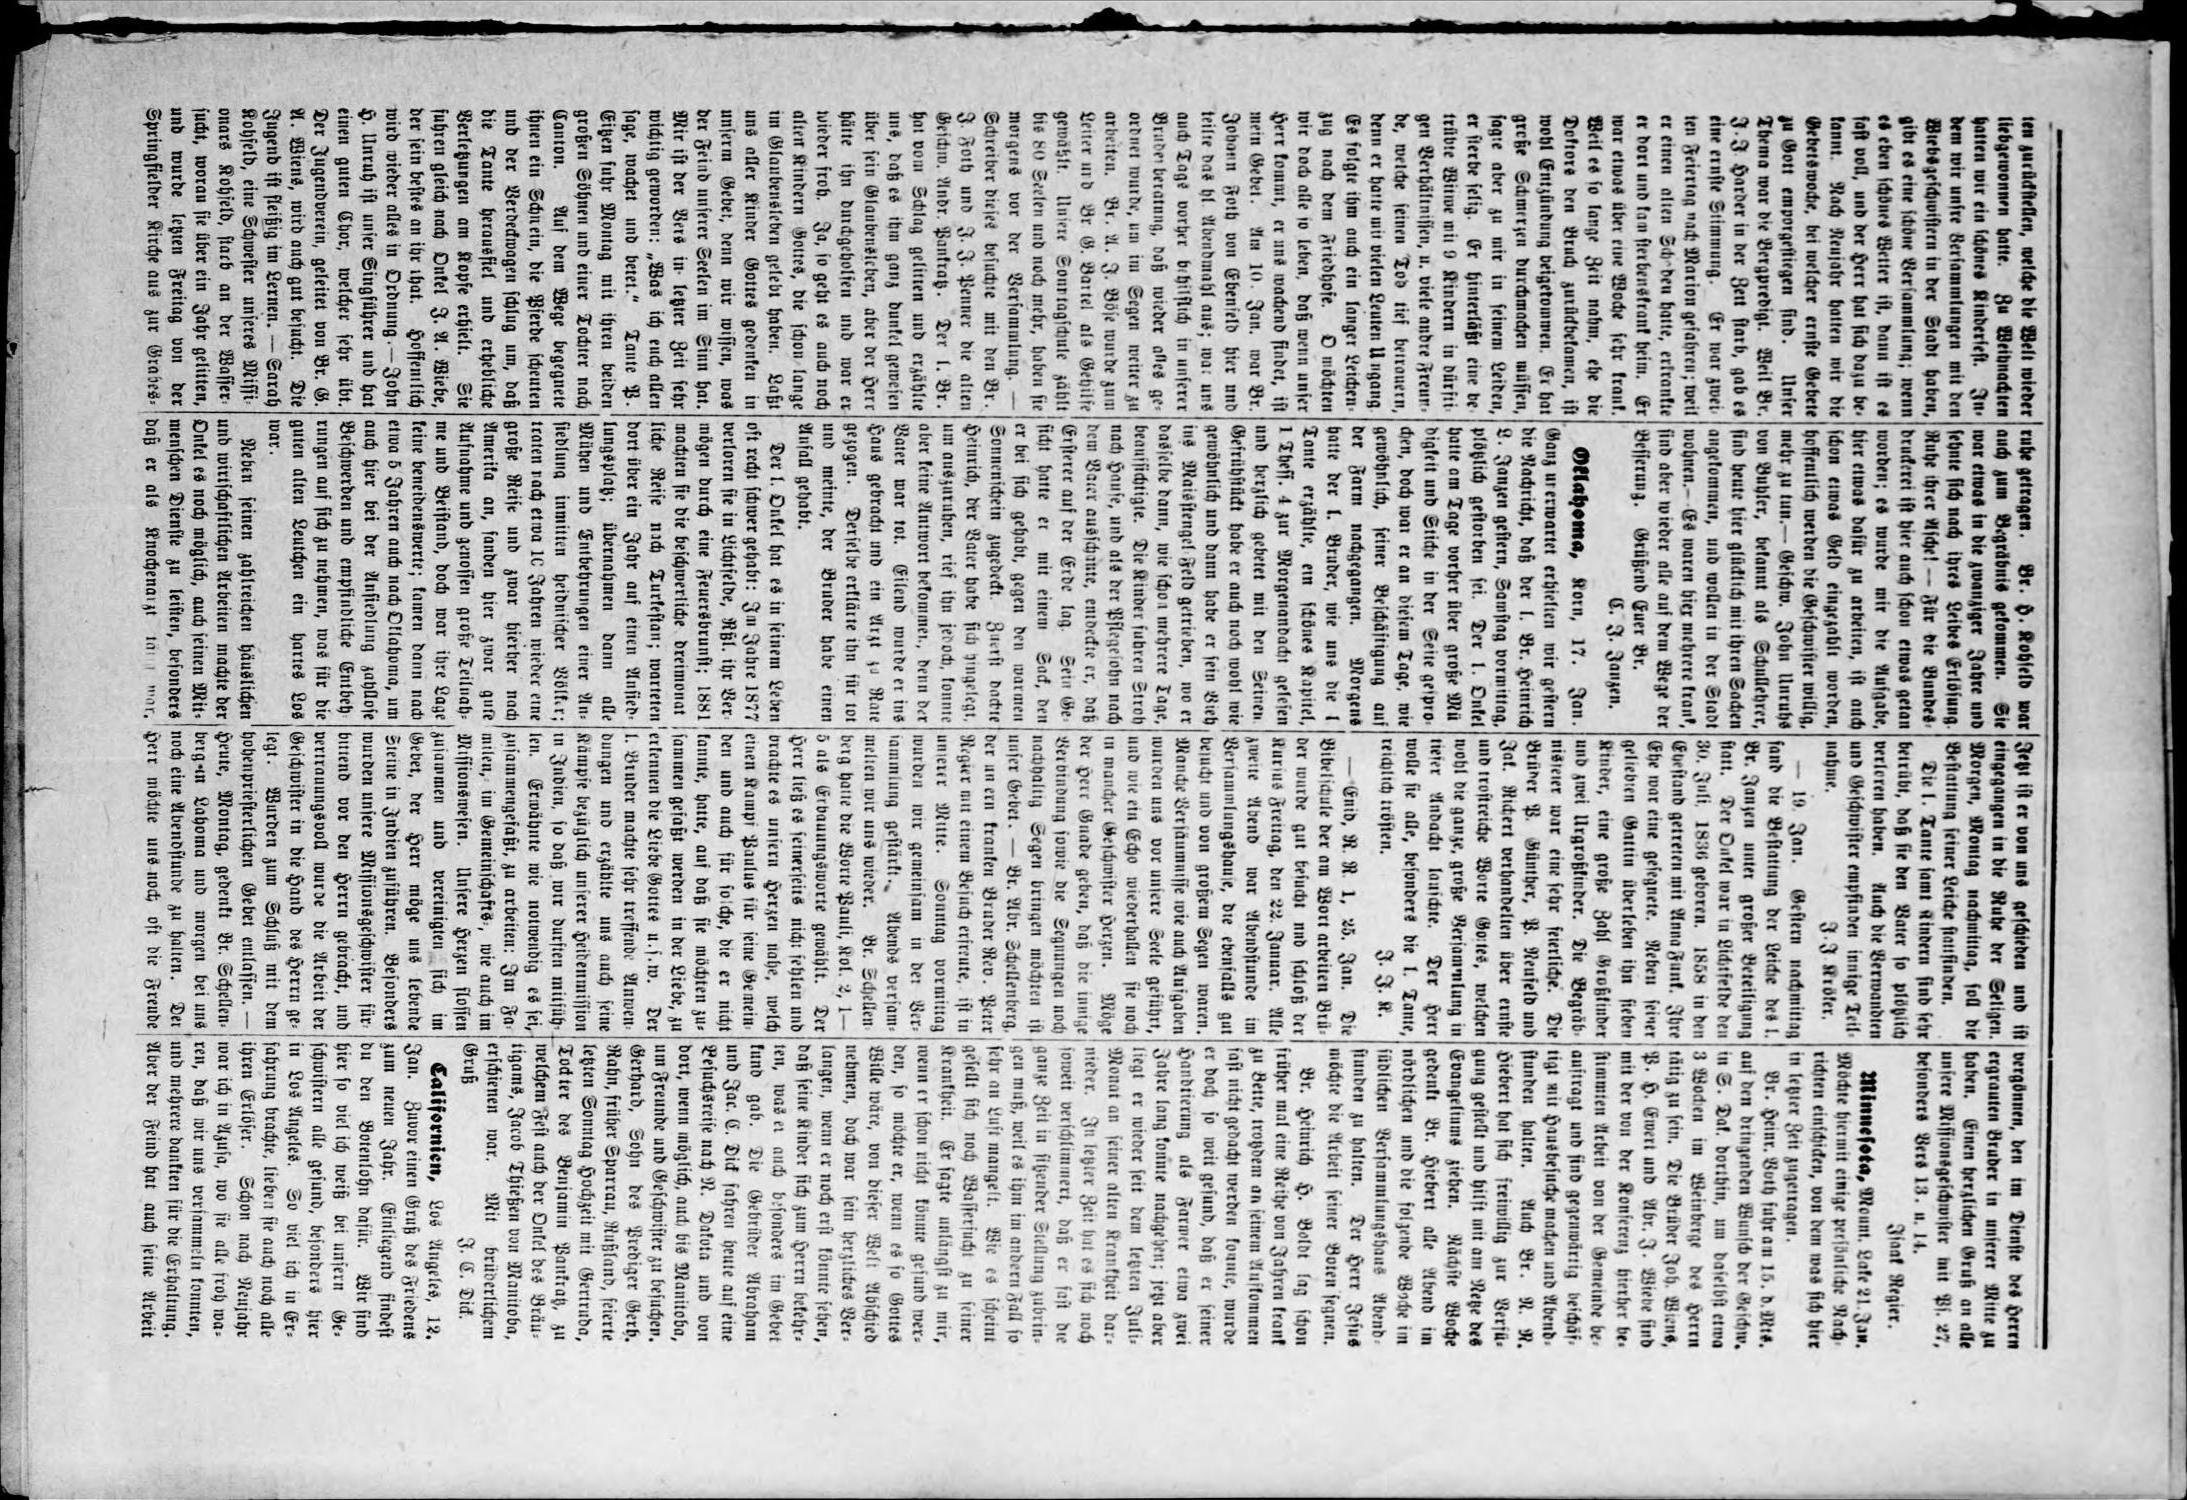 Zions--Bote. (Medford, Okla.), Vol. 20, No. 4, Ed. 1 Wednesday, January 27, 1904                                                                                                      [Sequence #]: 3 of 4